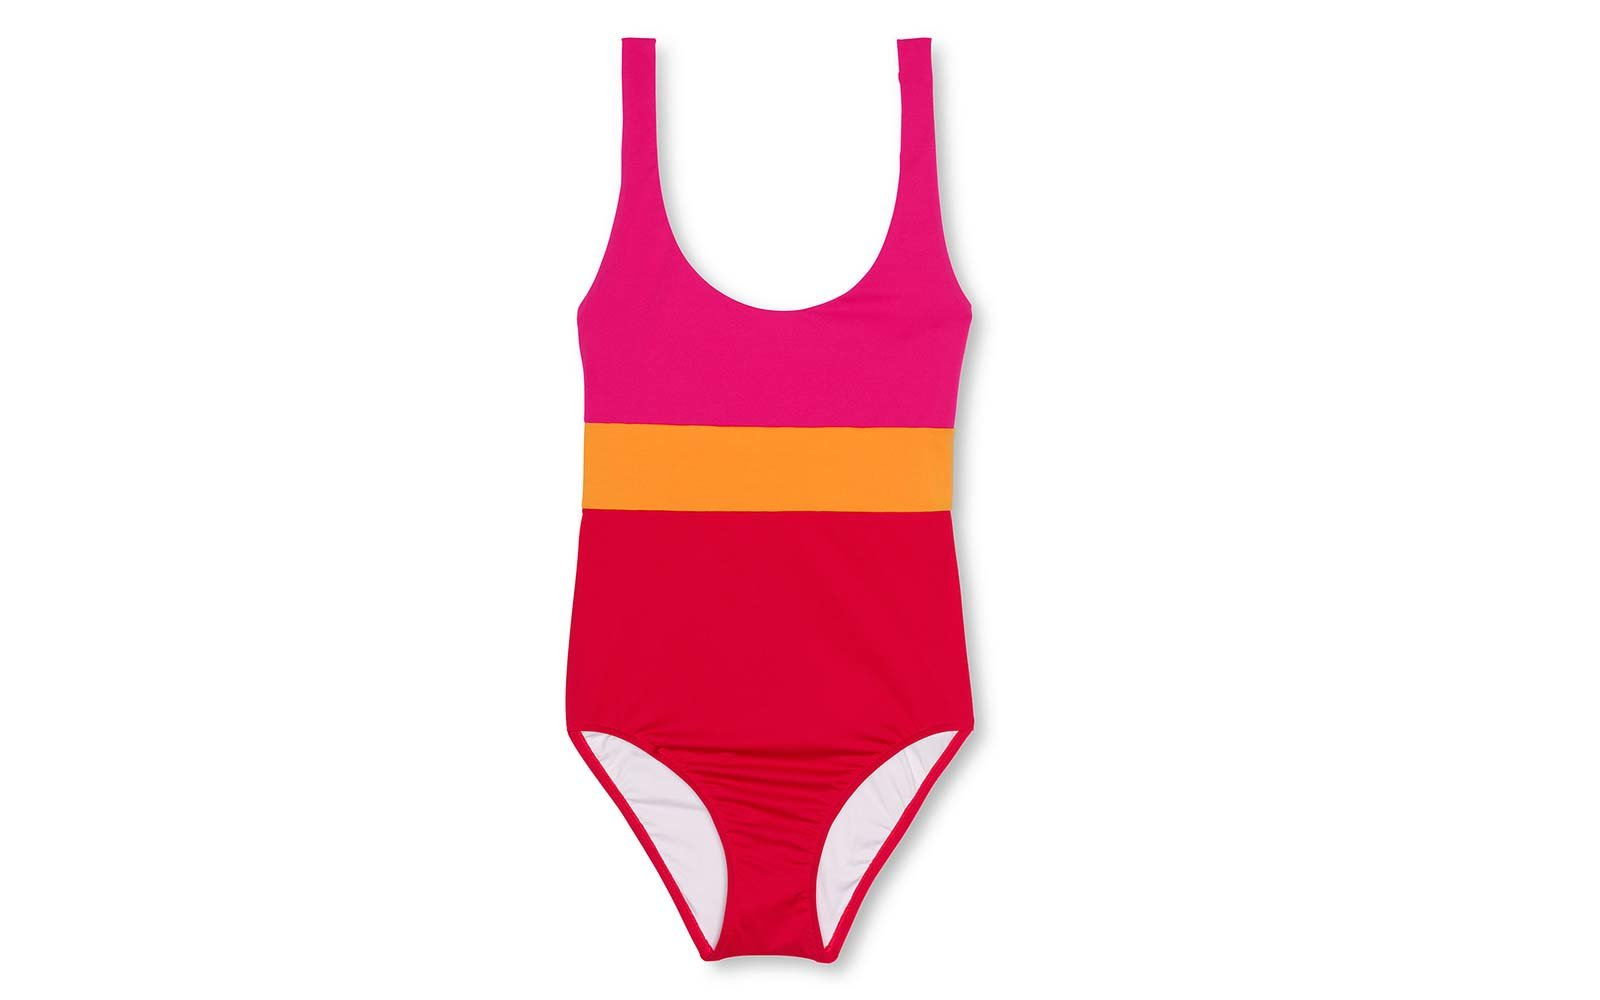 cab9a39d21c68 Lands' End Women's Scoopneck One-piece Swimsuit